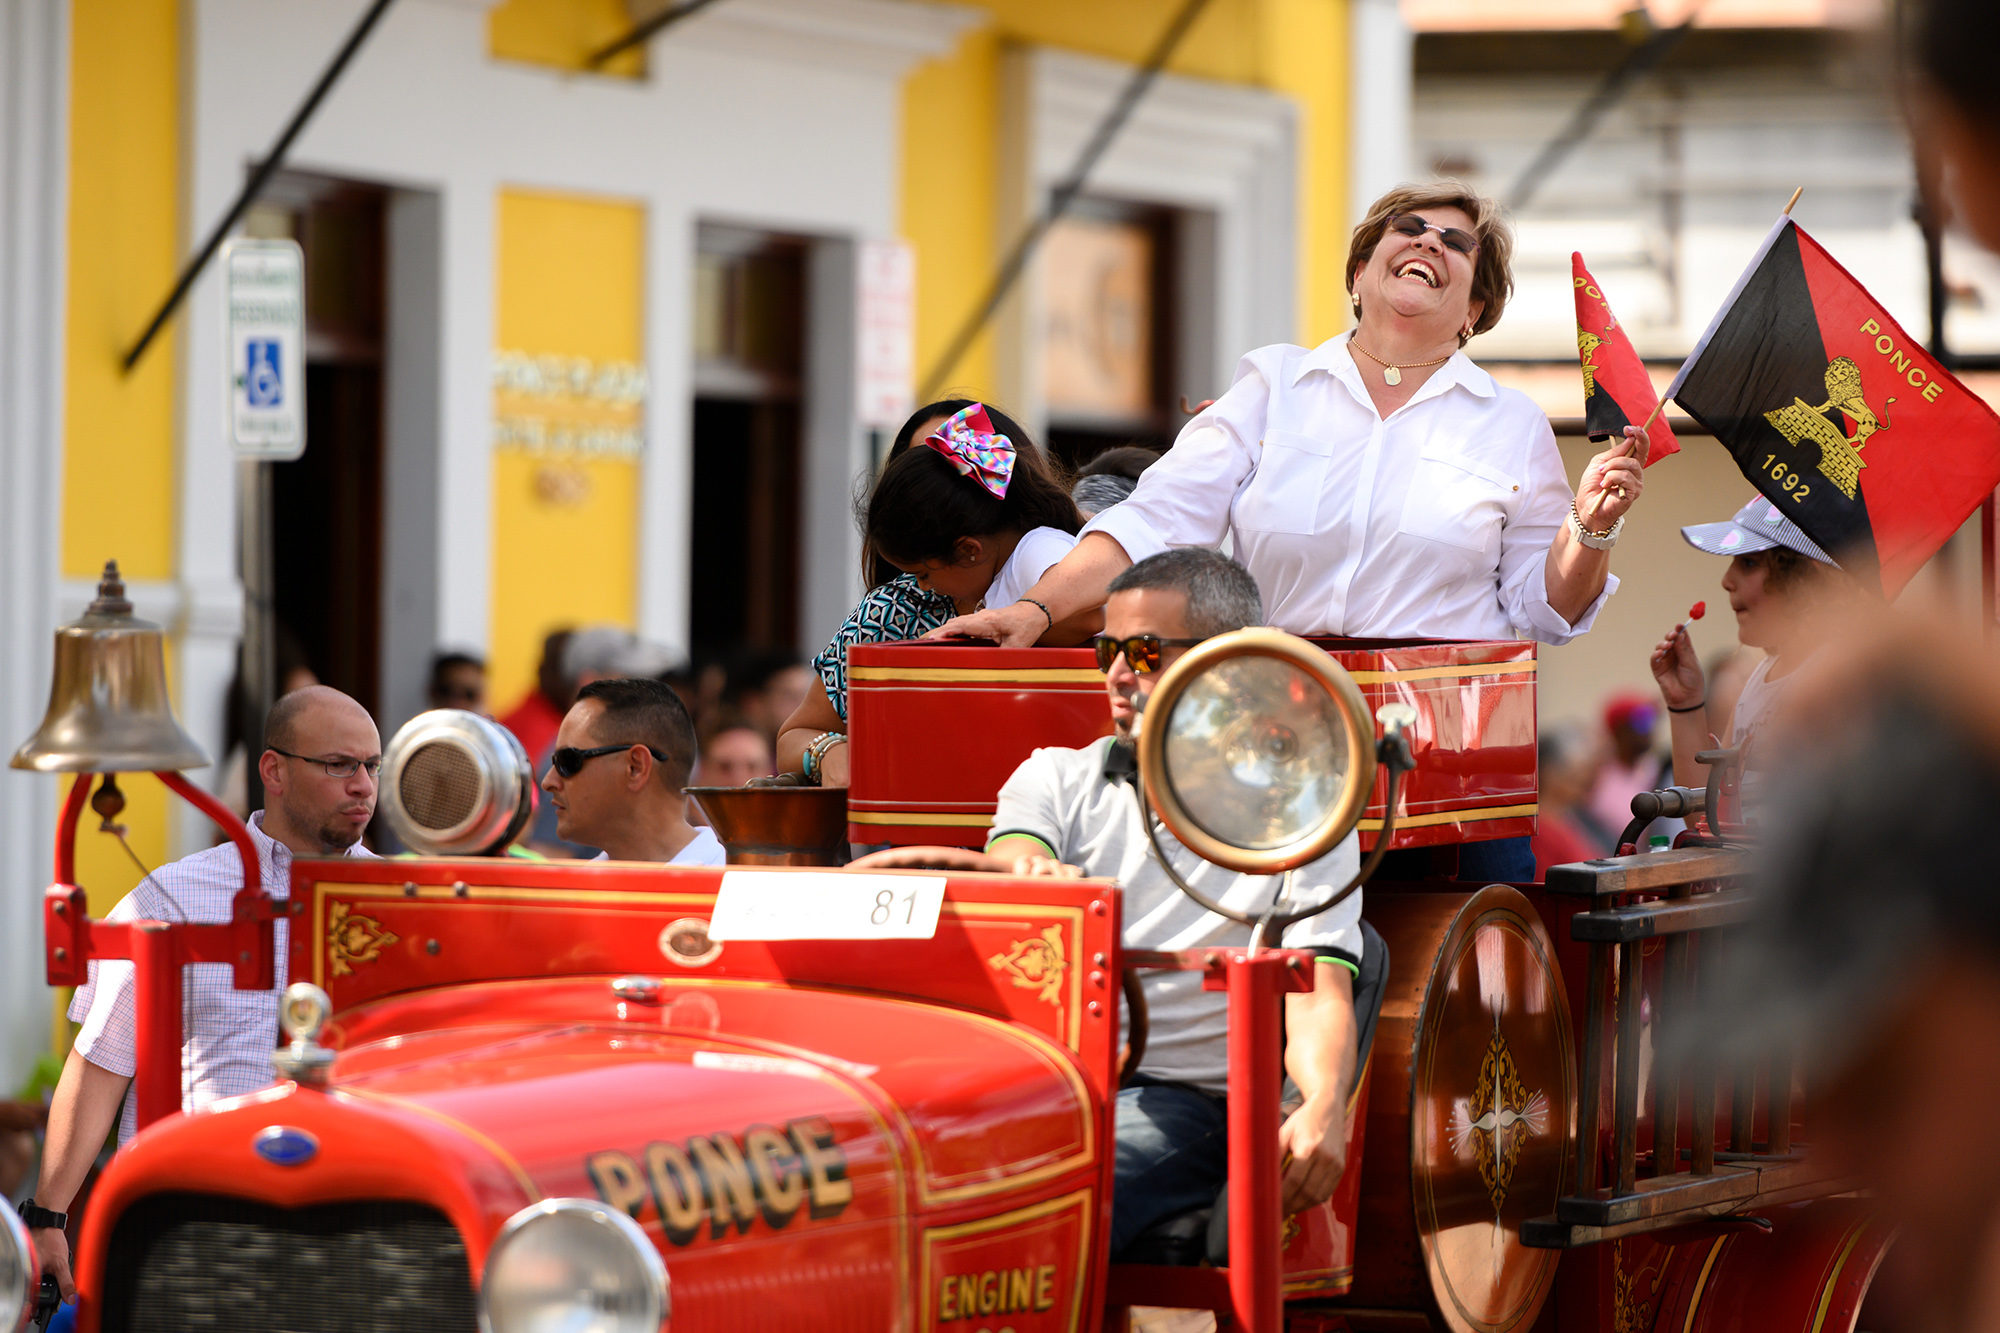 María Meléndez, the mayor of Ponce, Puerto Rico, laughs on the back of an antique firetruck during the Carnaval Ponceño parade in Ponce on Sunday, March 3, 2019. Photo by Sydney Herdle.